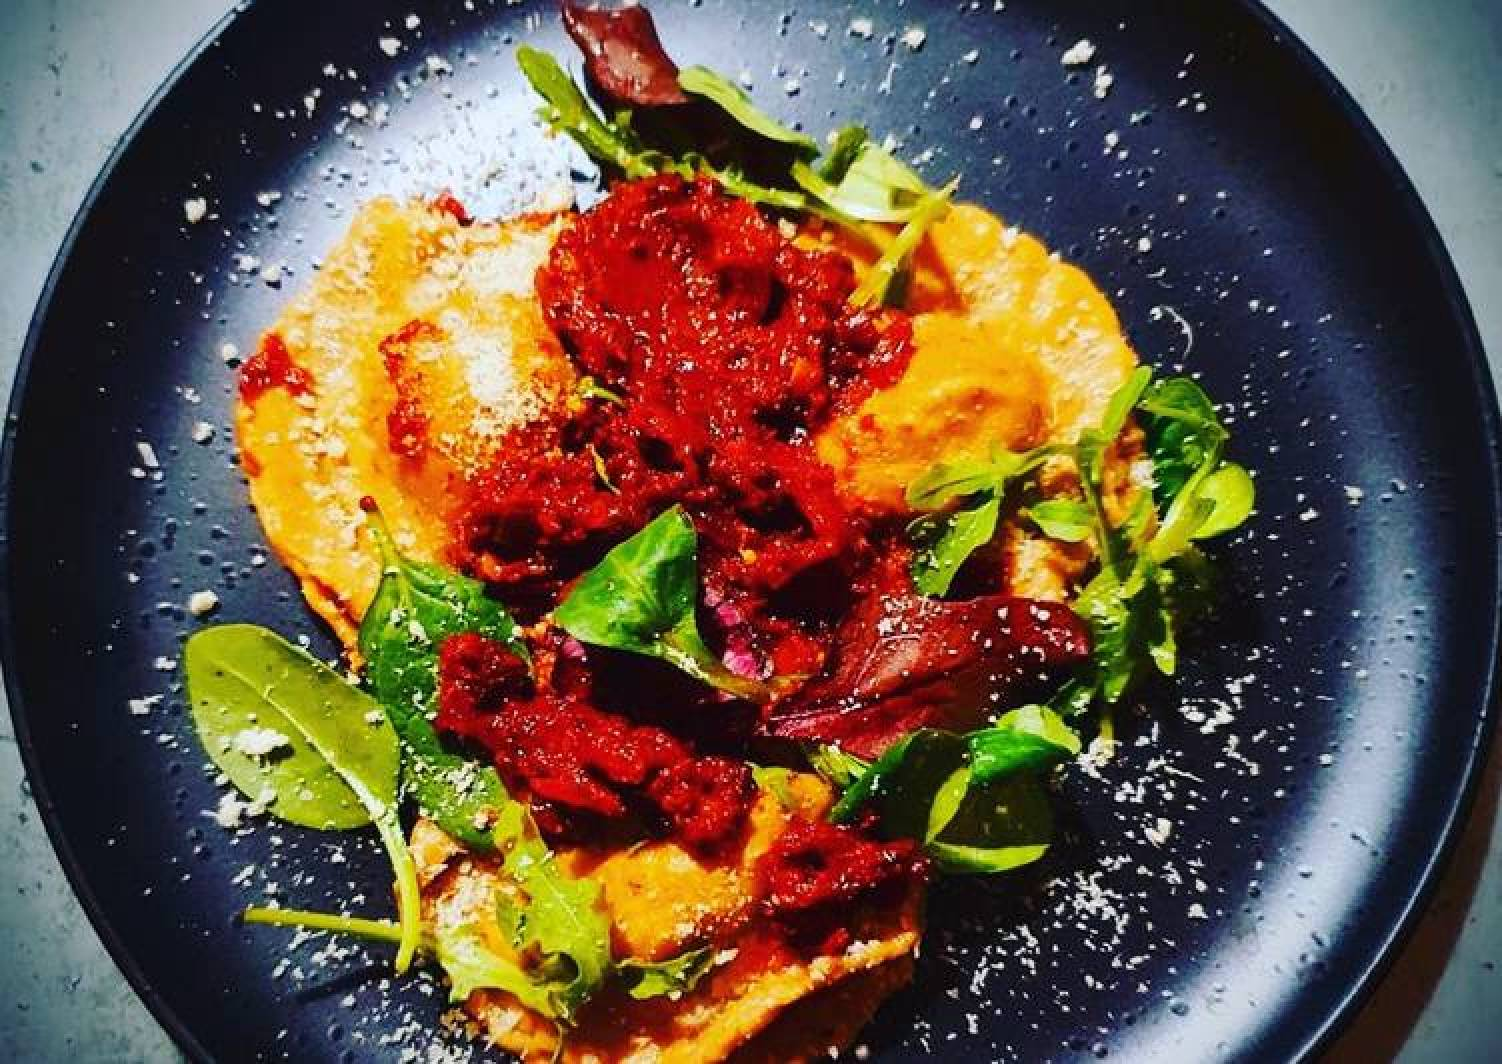 Spiced Leeks-Bacon-Mushrooms Ravioli with Red wine, Garlic and Chilli Tomato Sauce